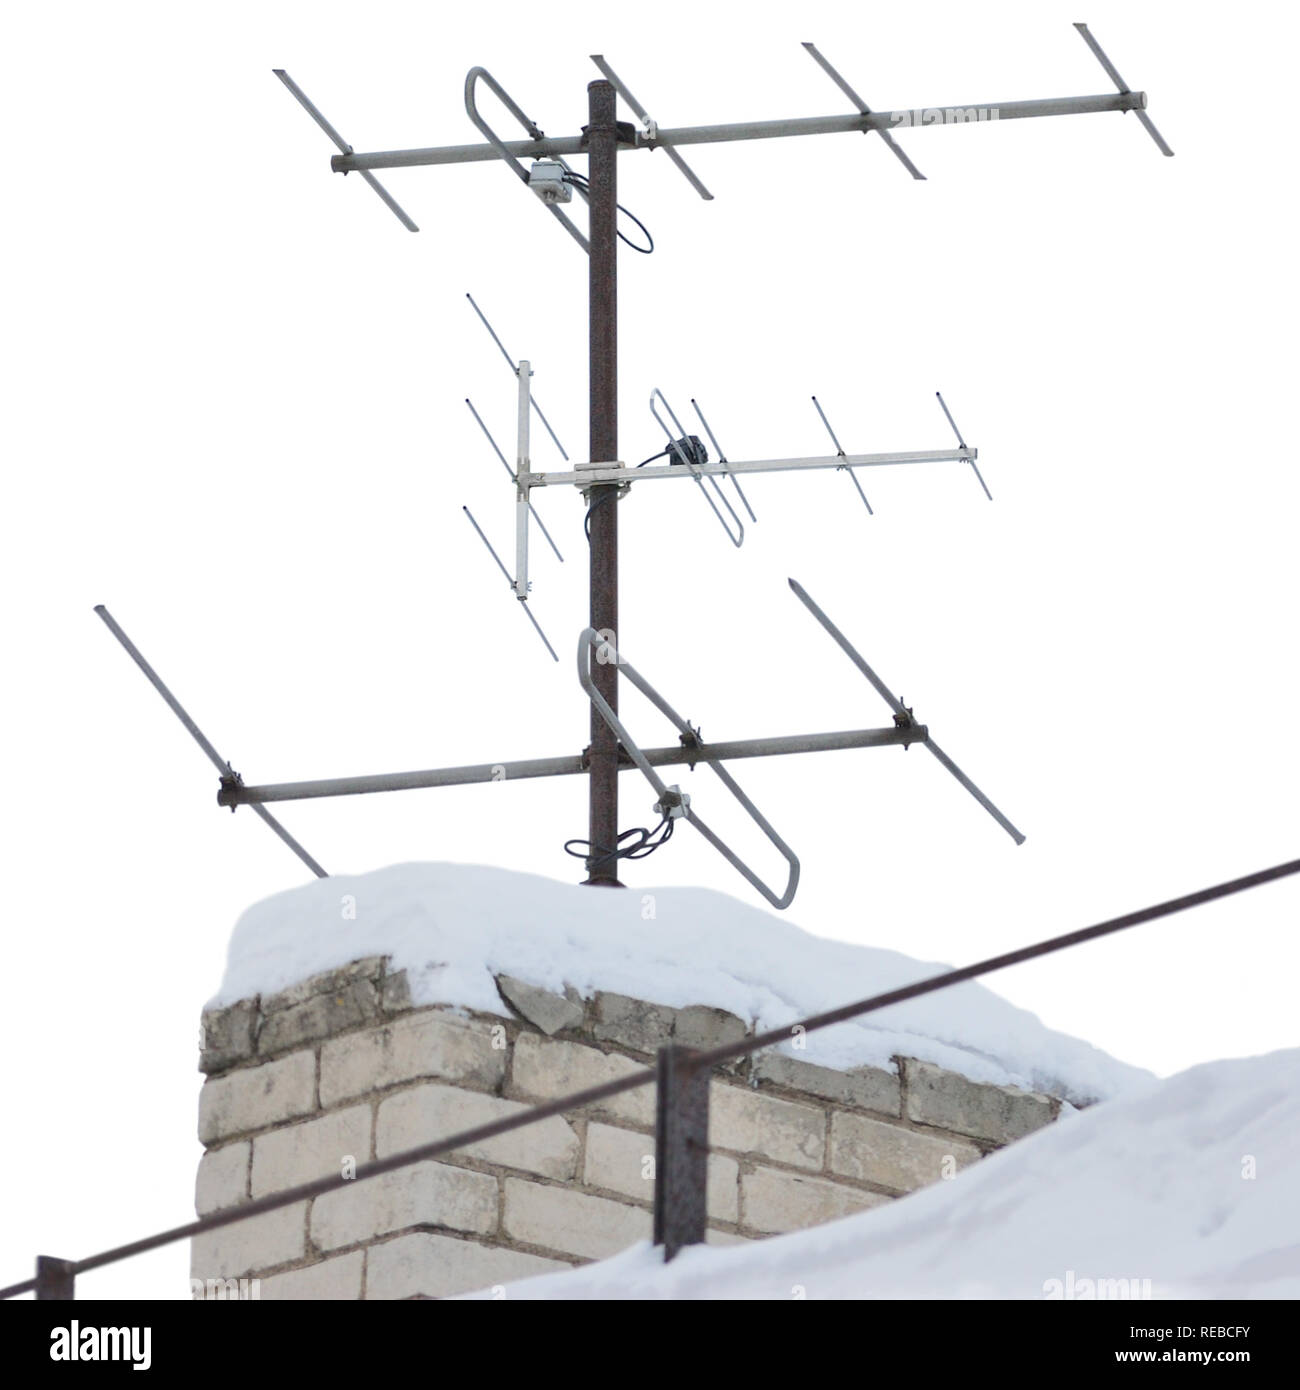 TV and communication aerials on snowy roof of residential house, multiple isolated dvb-t antennas winter scene, large detailed vertical closeup, rusty Stock Photo